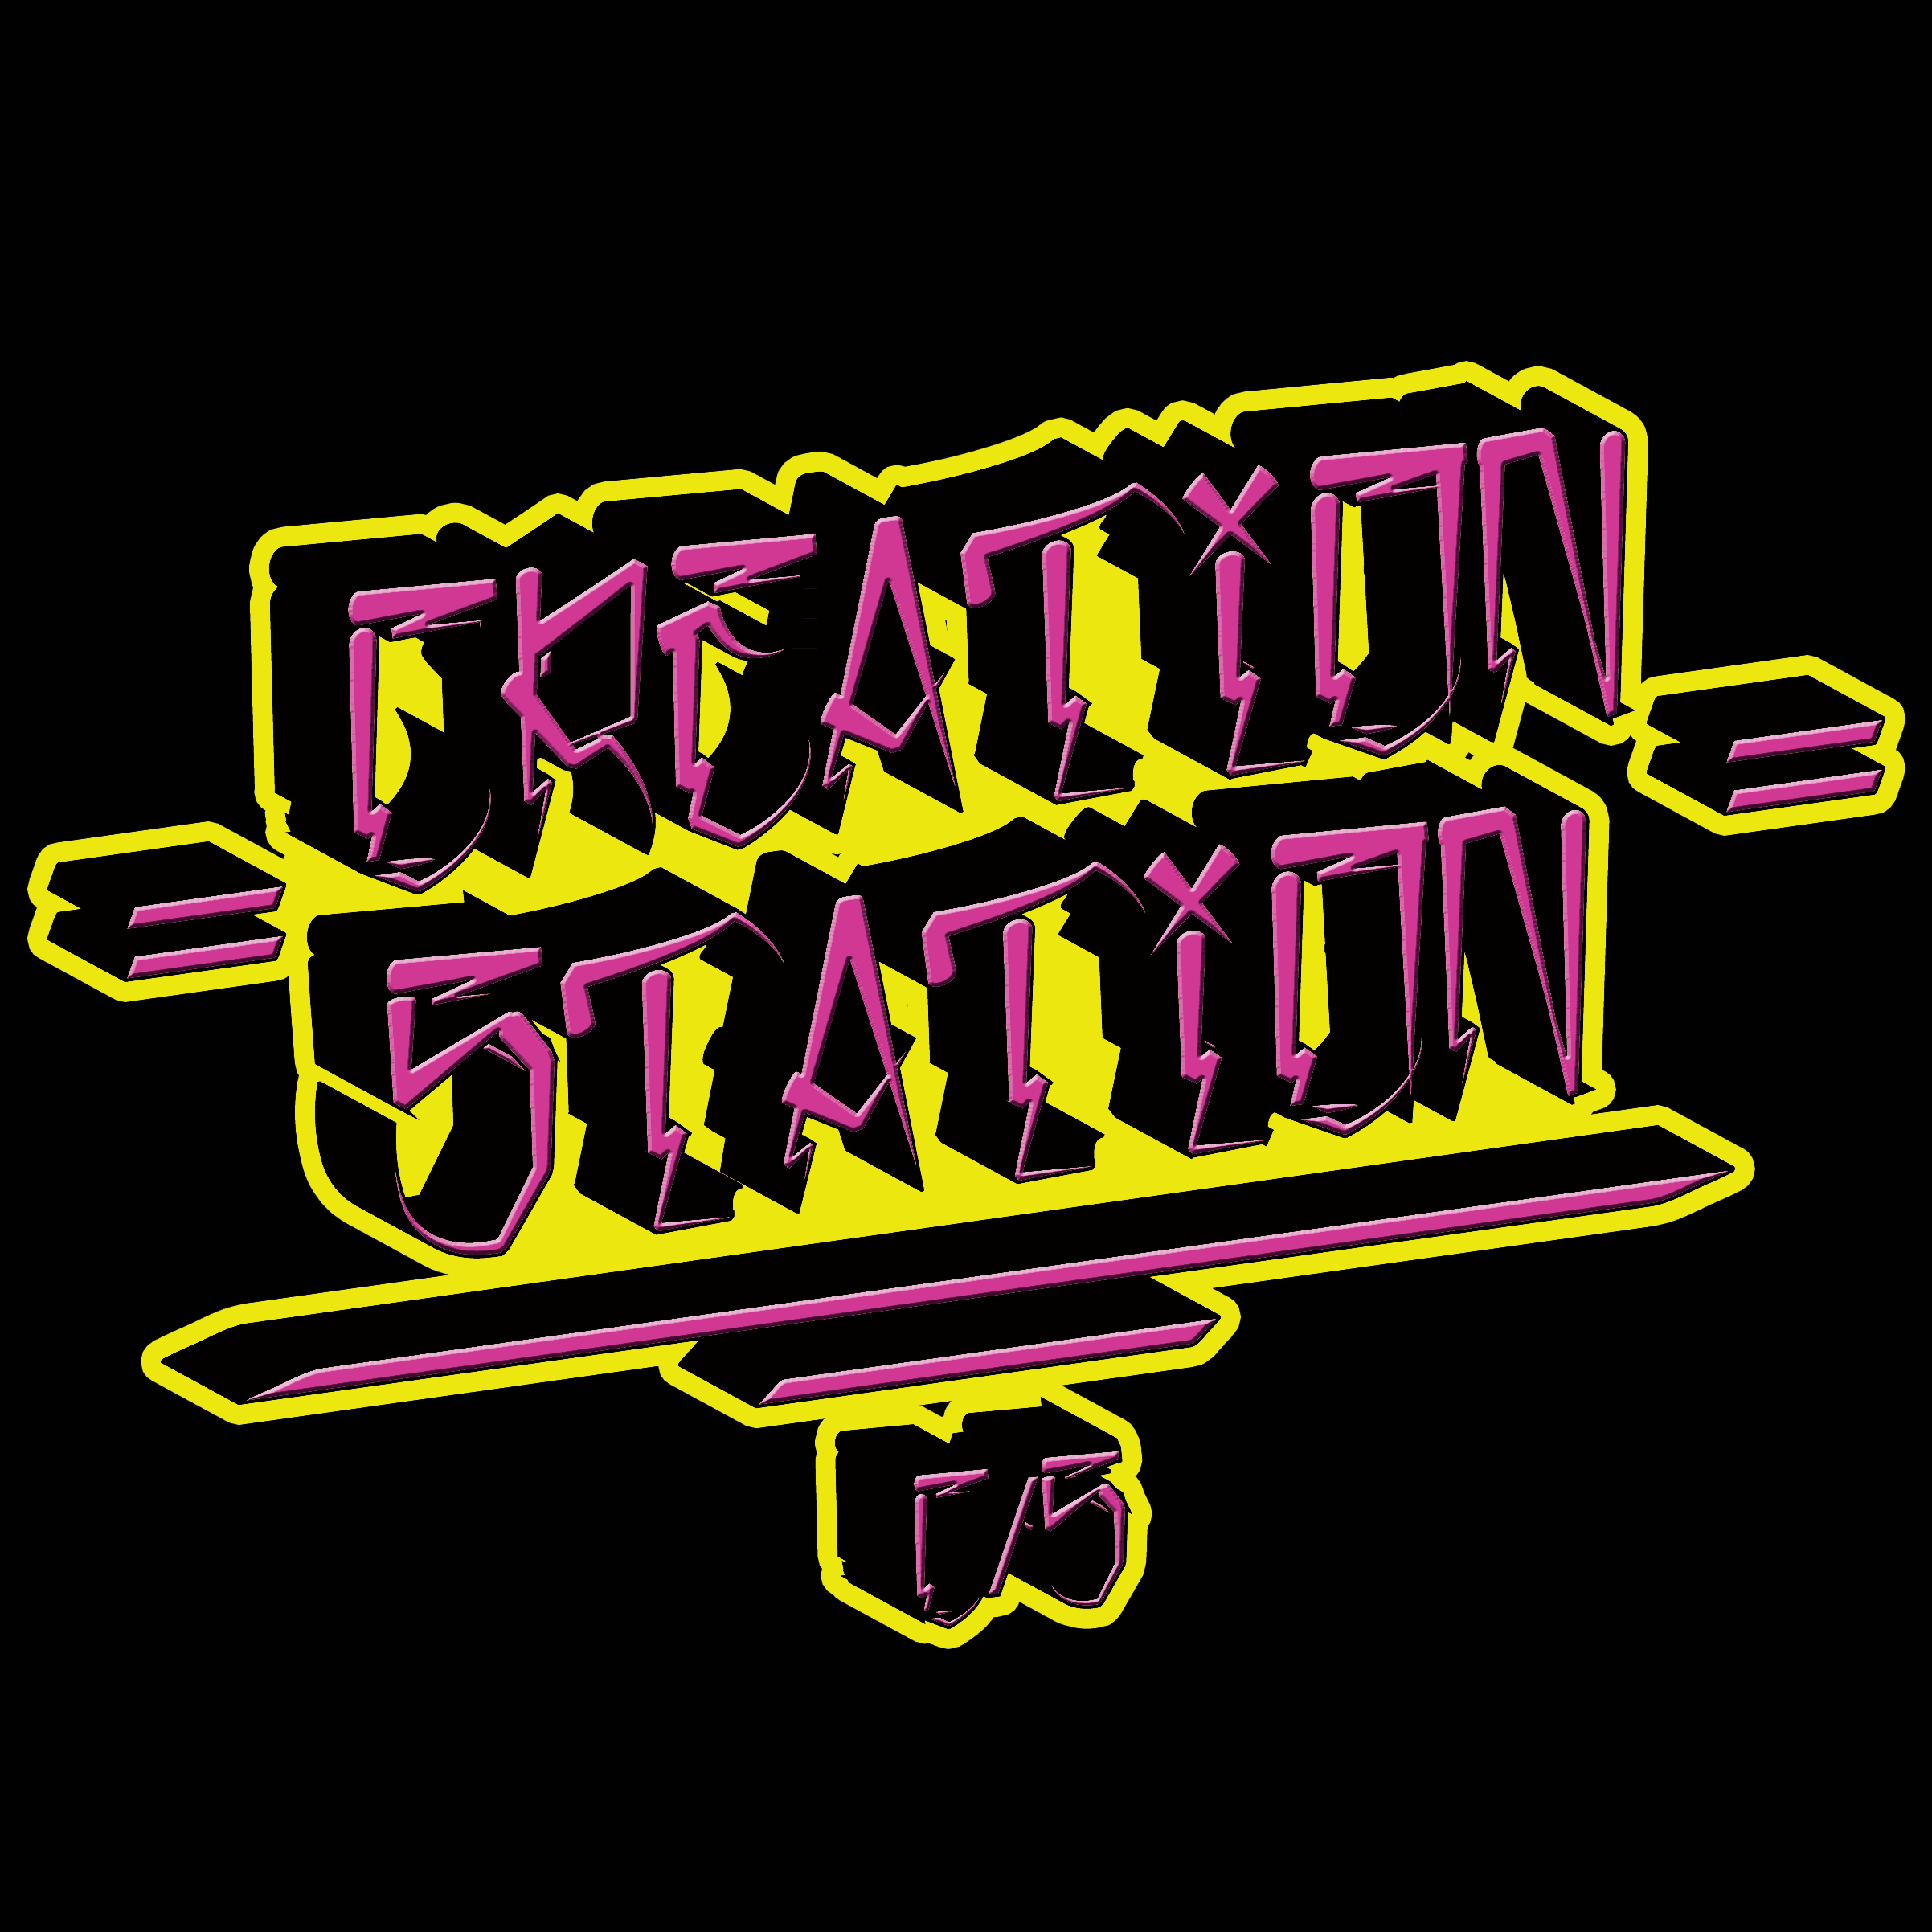 creation-station.png